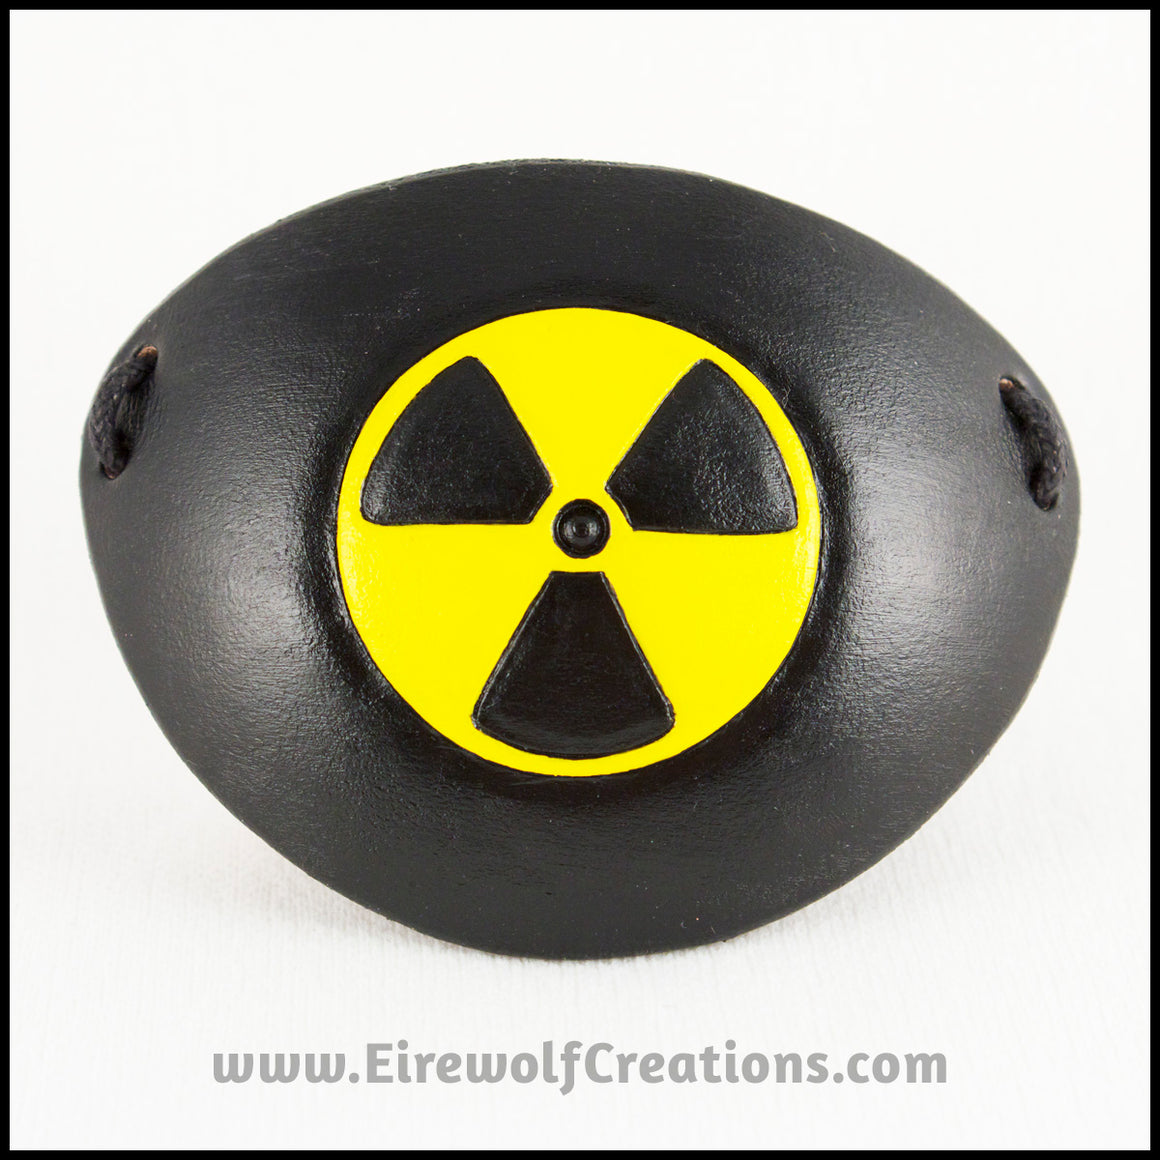 A handmade leather eye patch with a carved and painted radiation hazard symbol in black and yellow, for a masquerade costume or pirate cosplay. By Erin Metcalf of Eirewolf Creations.